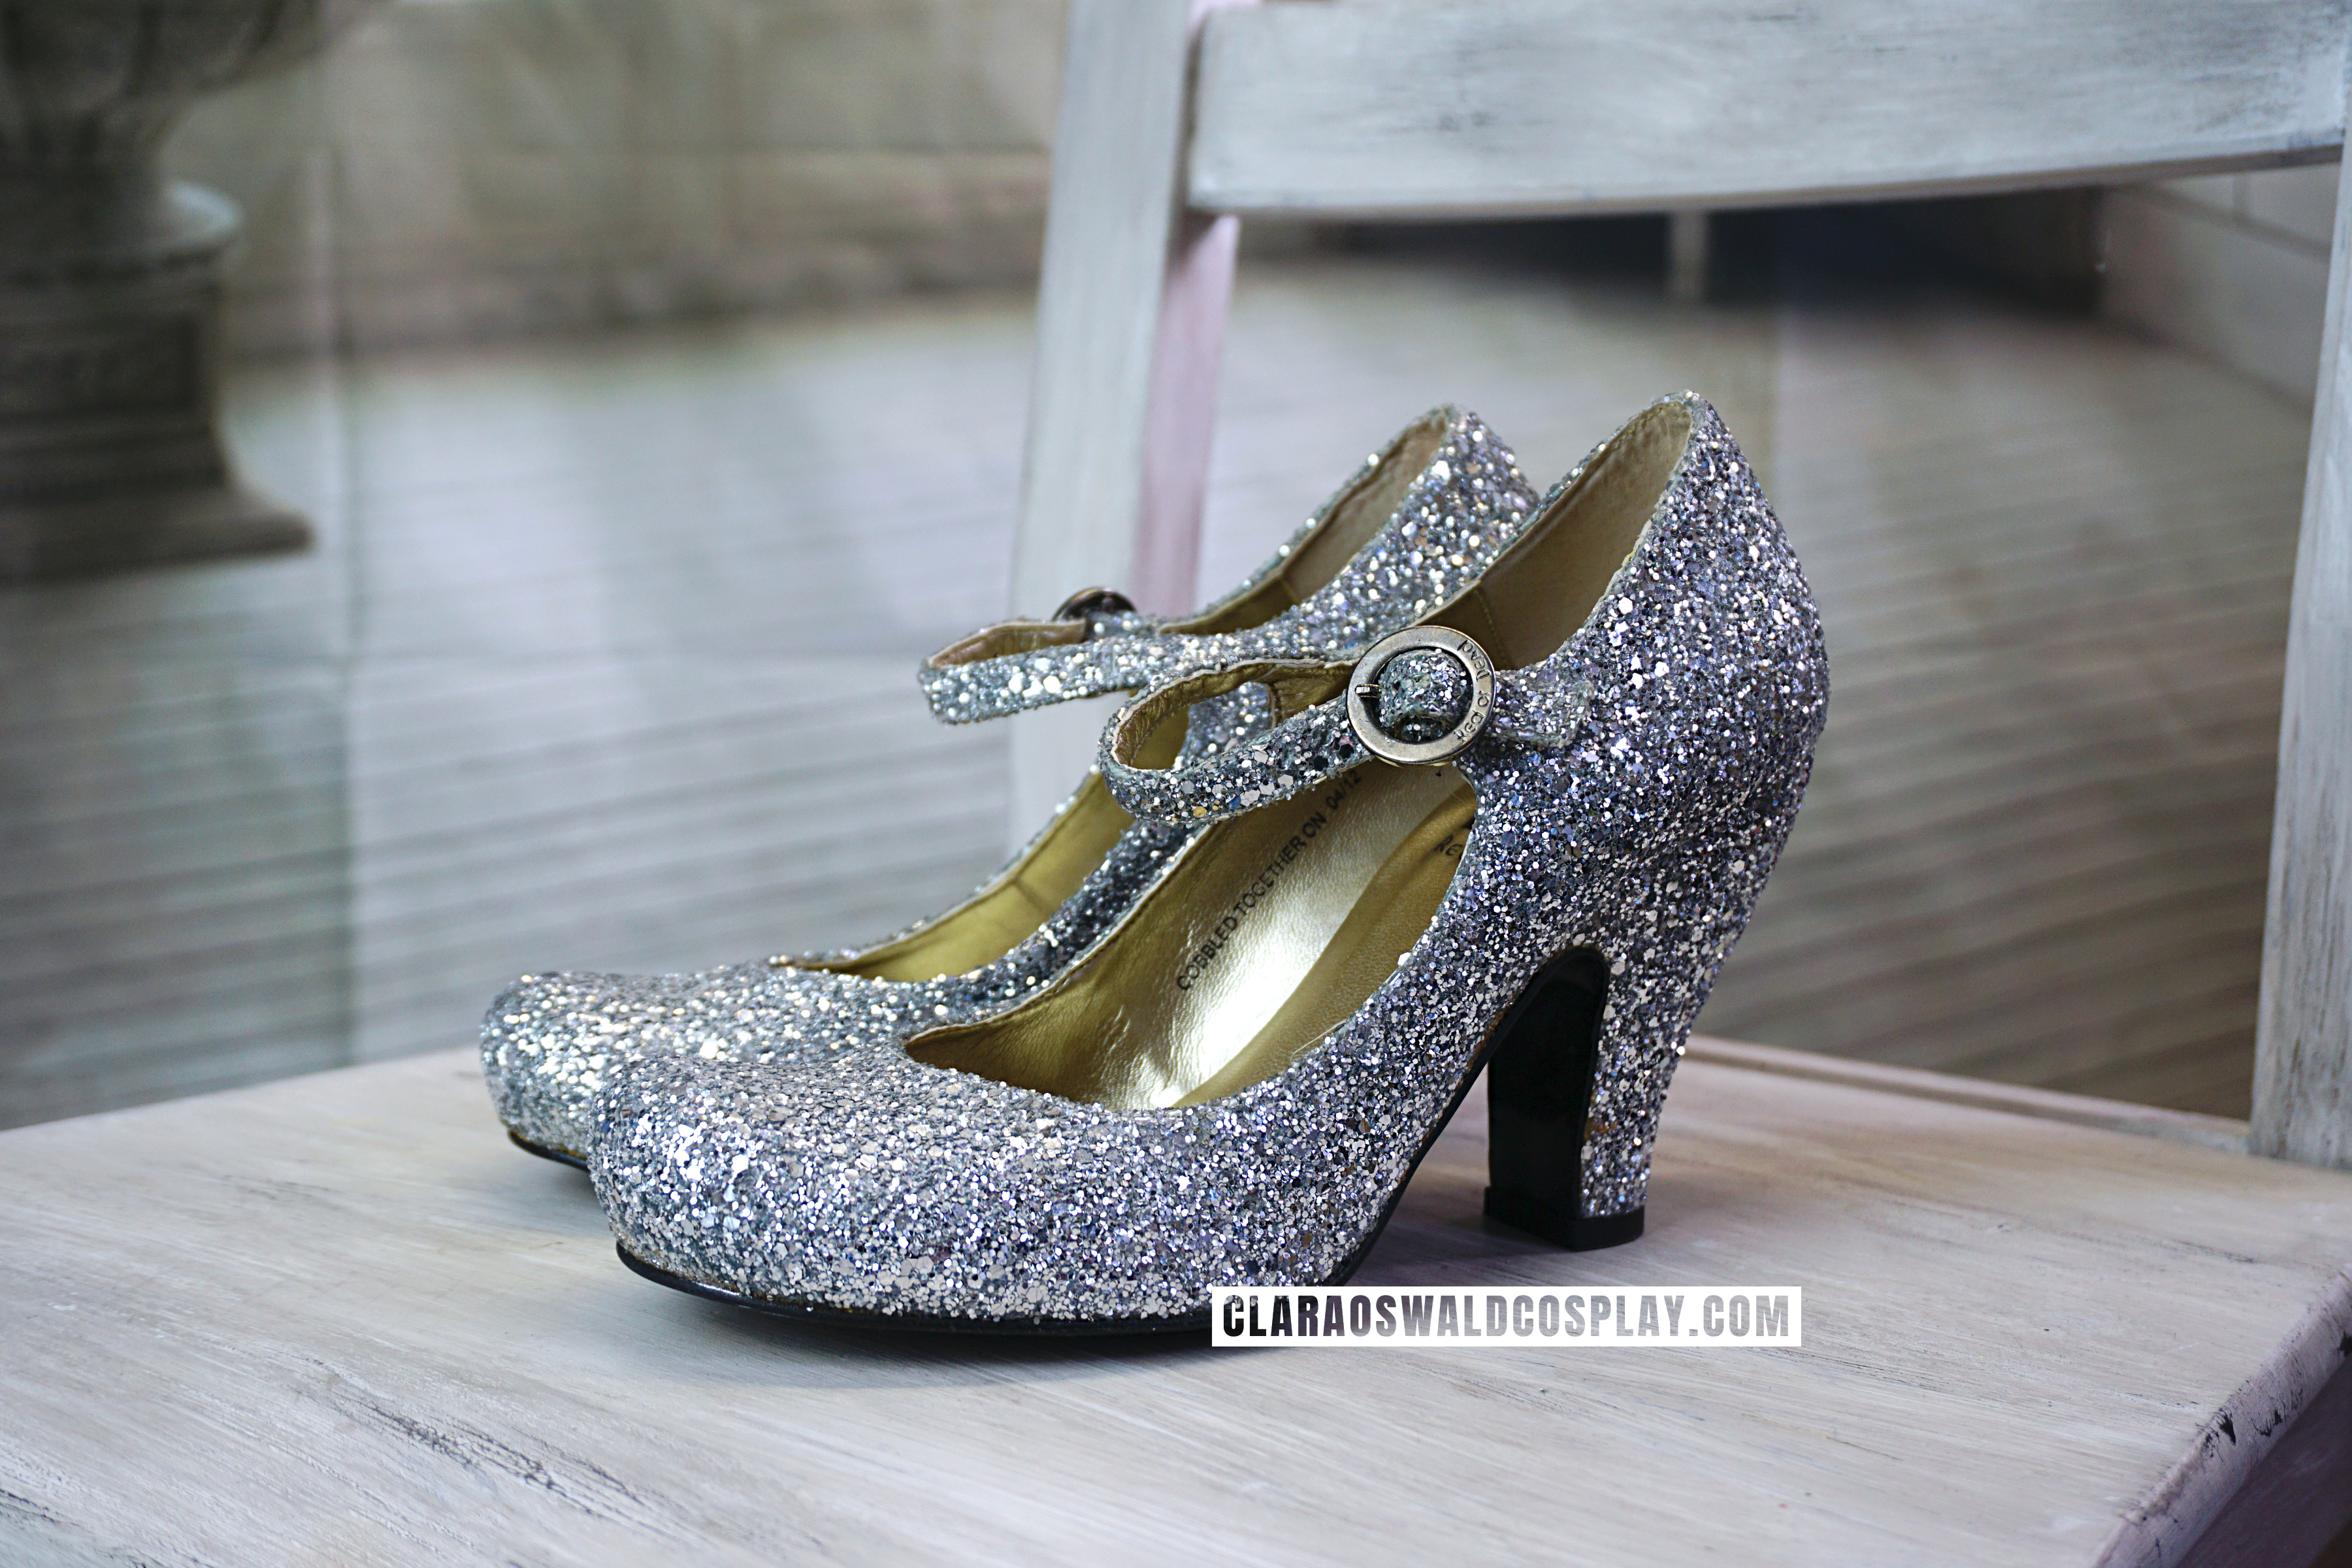 Clara Oswald's Red Or Dead Shirley Glitter Heels as worn in Cold War